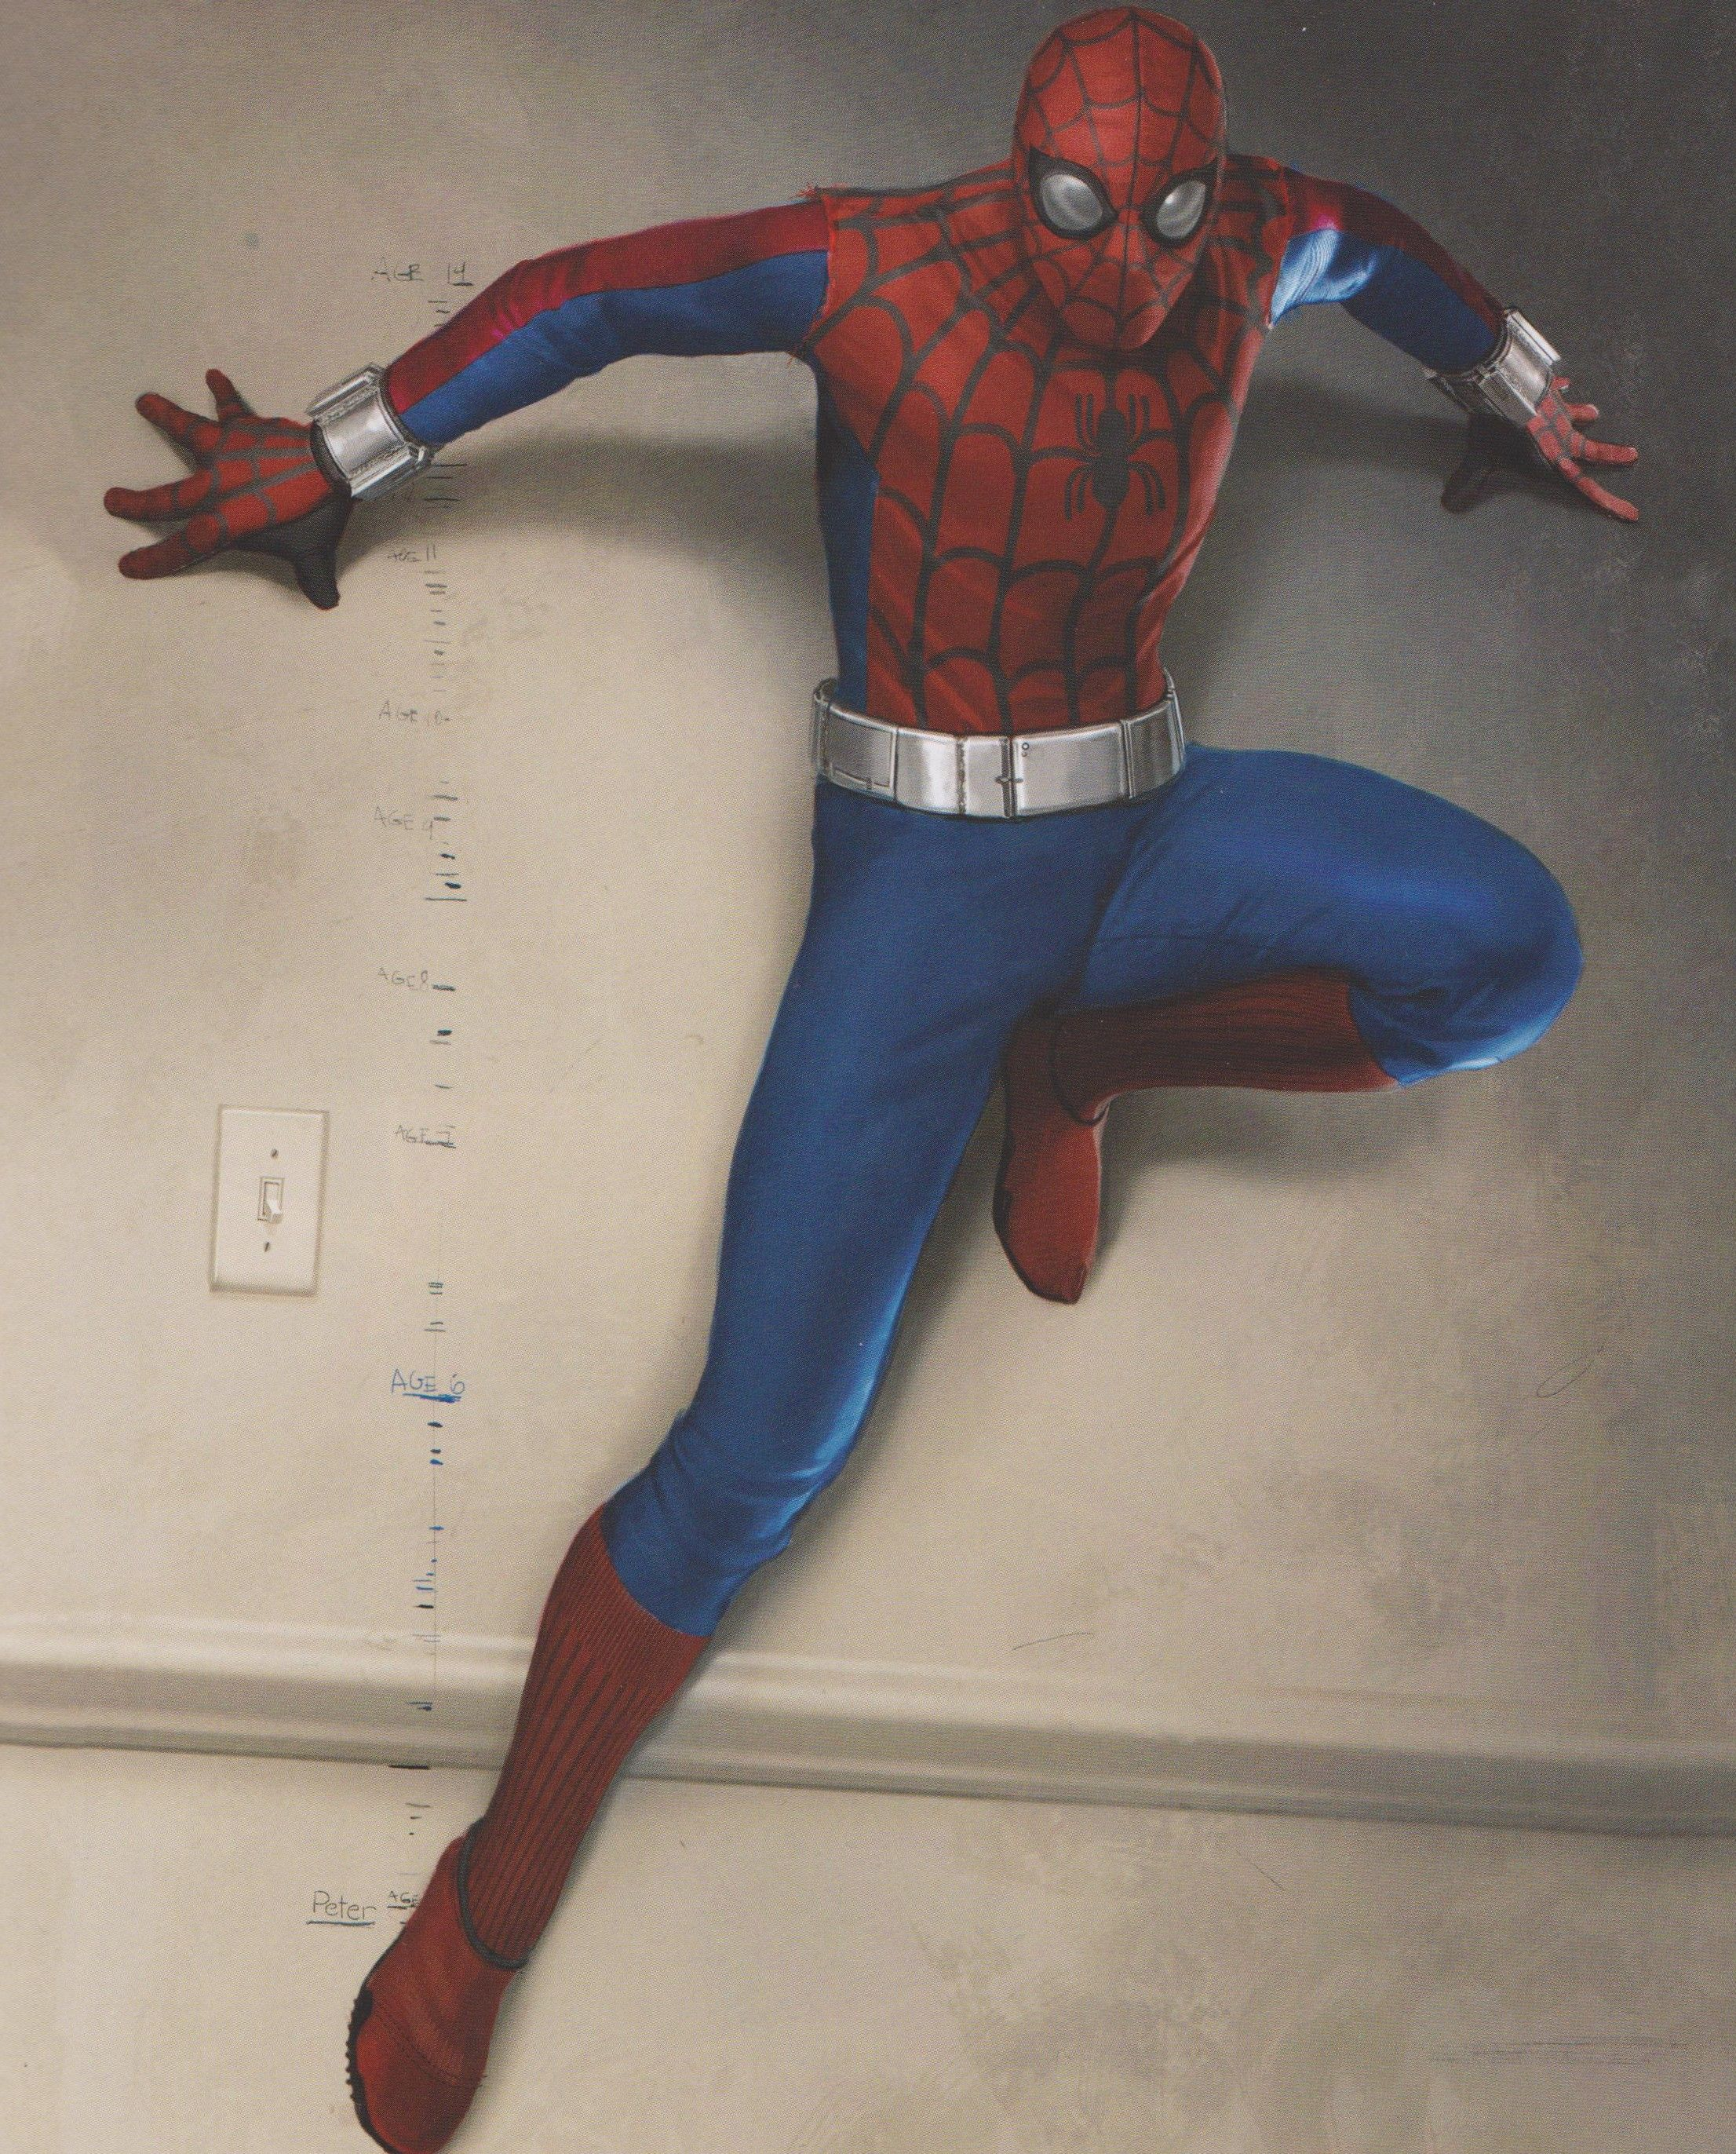 Spider Man Homecoming Homemade Suit Concept Art Takes Unexpected